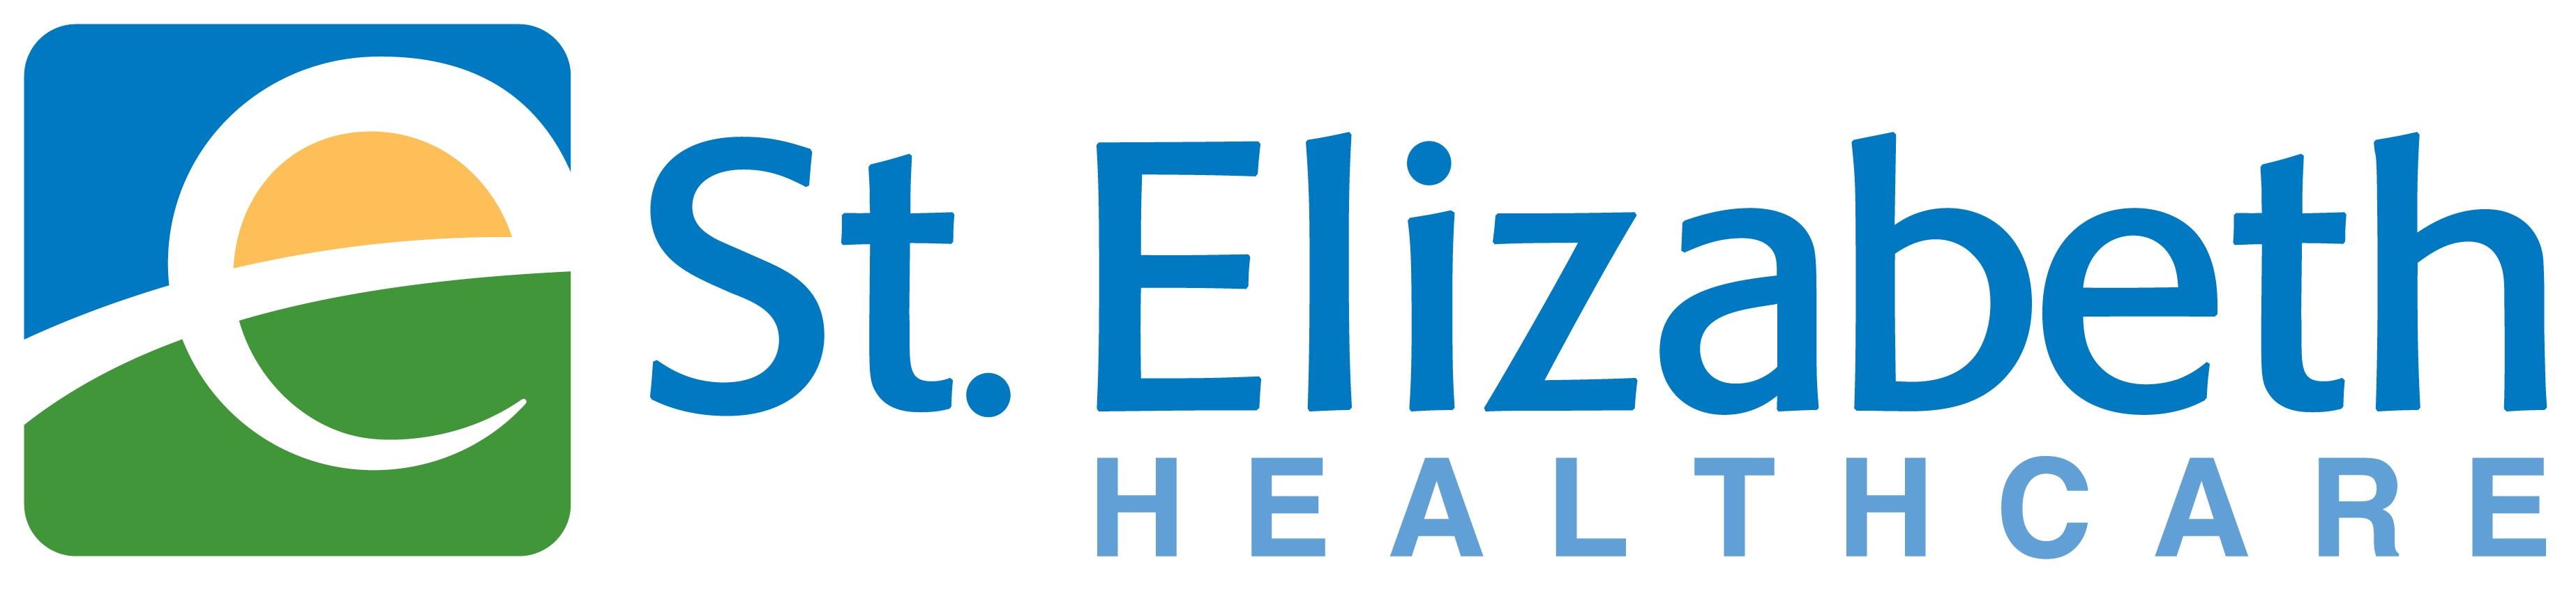 St. Elizabeth Healthcare- Fort Thomas Logo